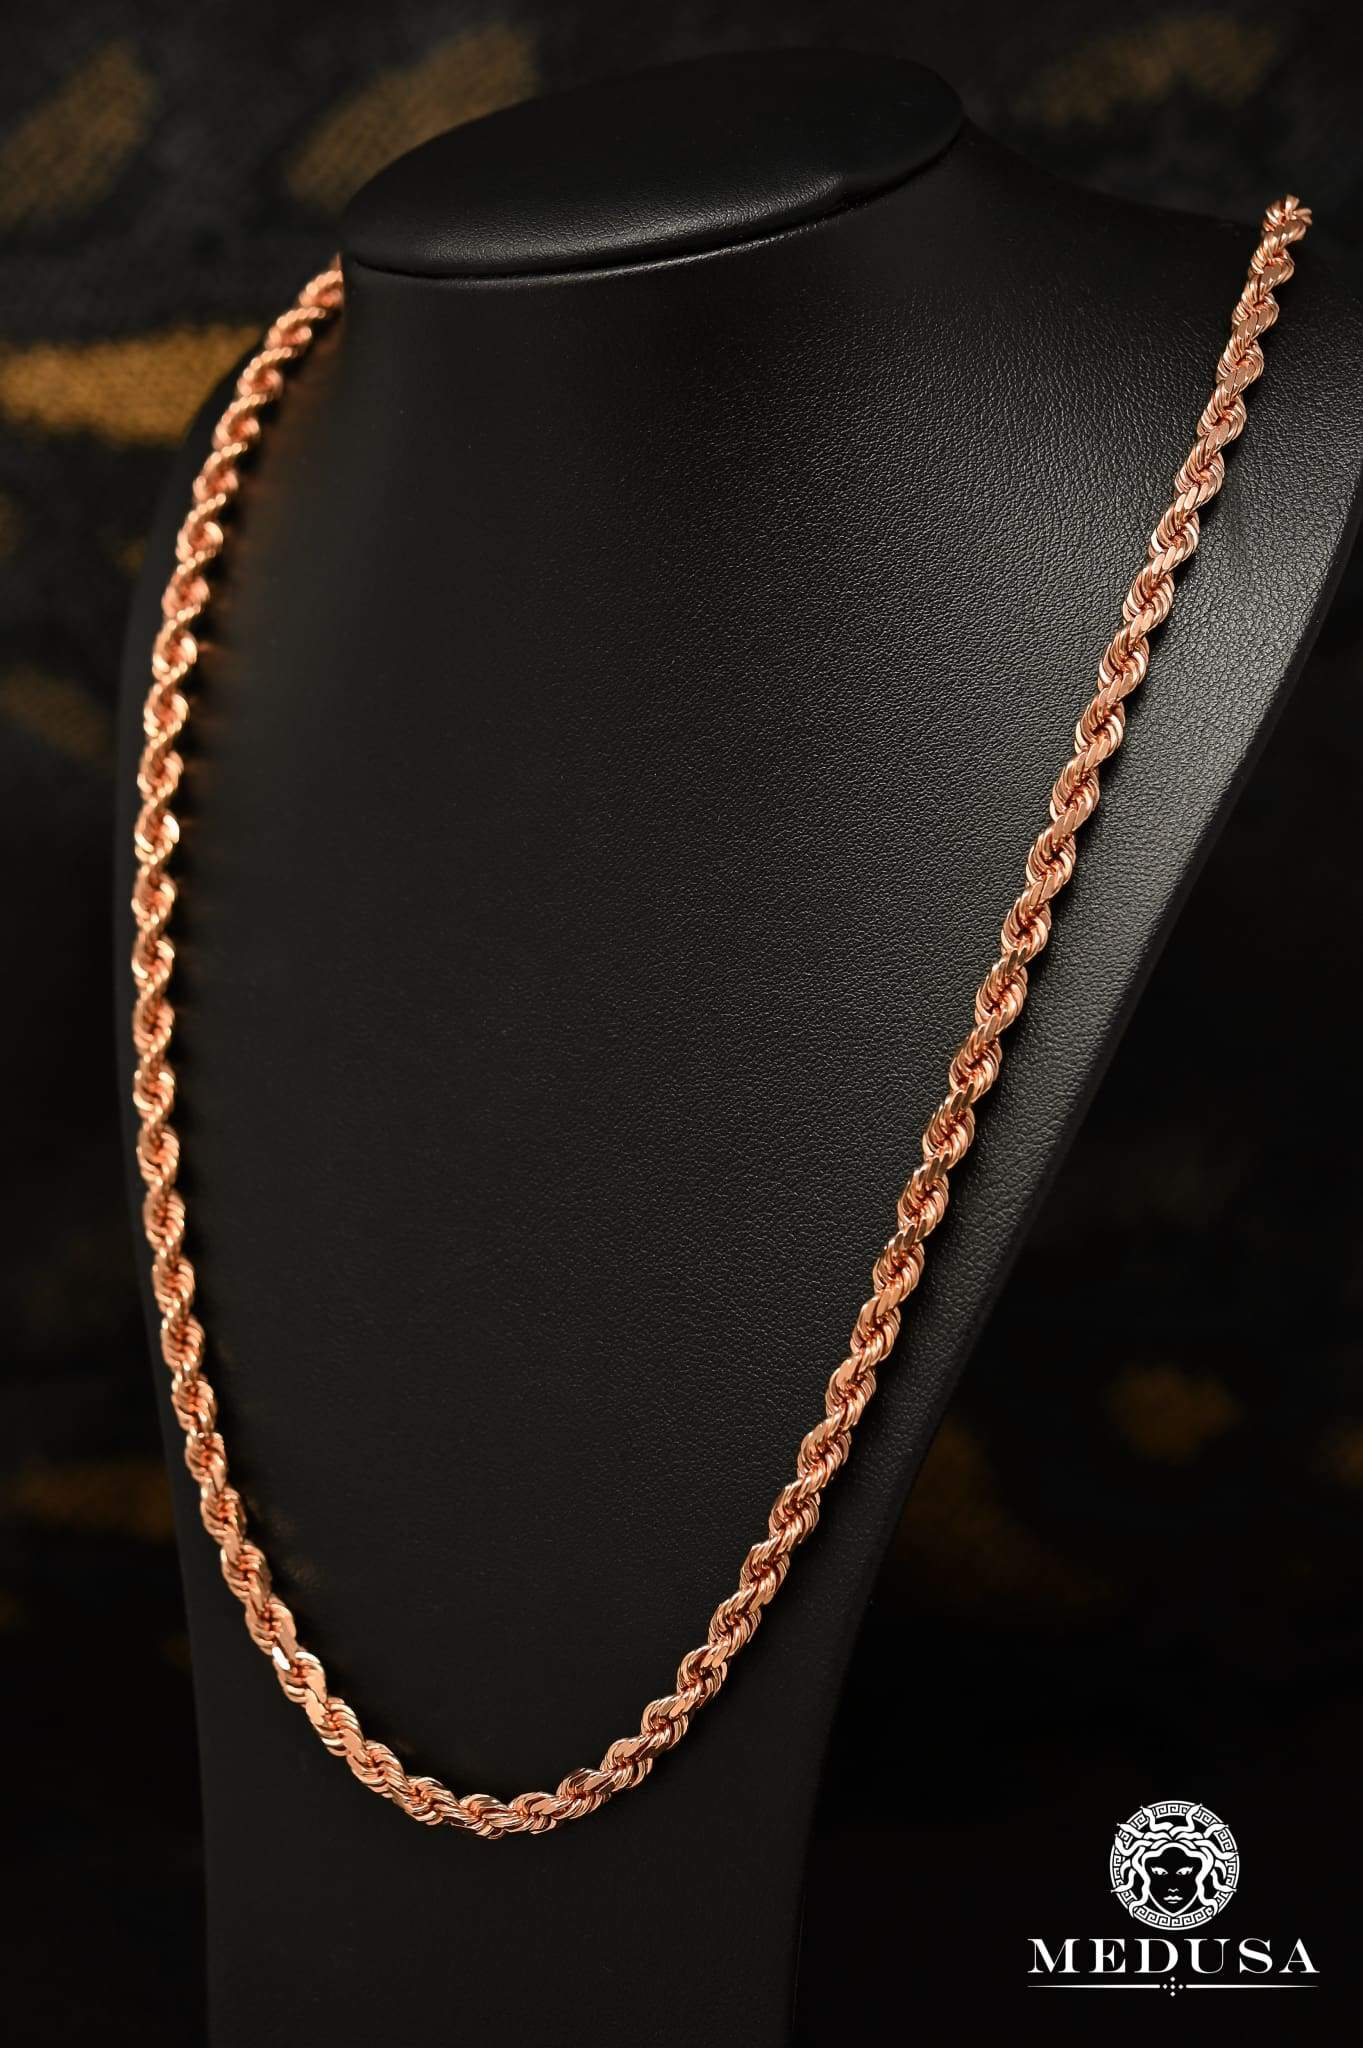 10k Gold Chain 5mm Rope Chain Solid Rose Gold Medusa Jewelry